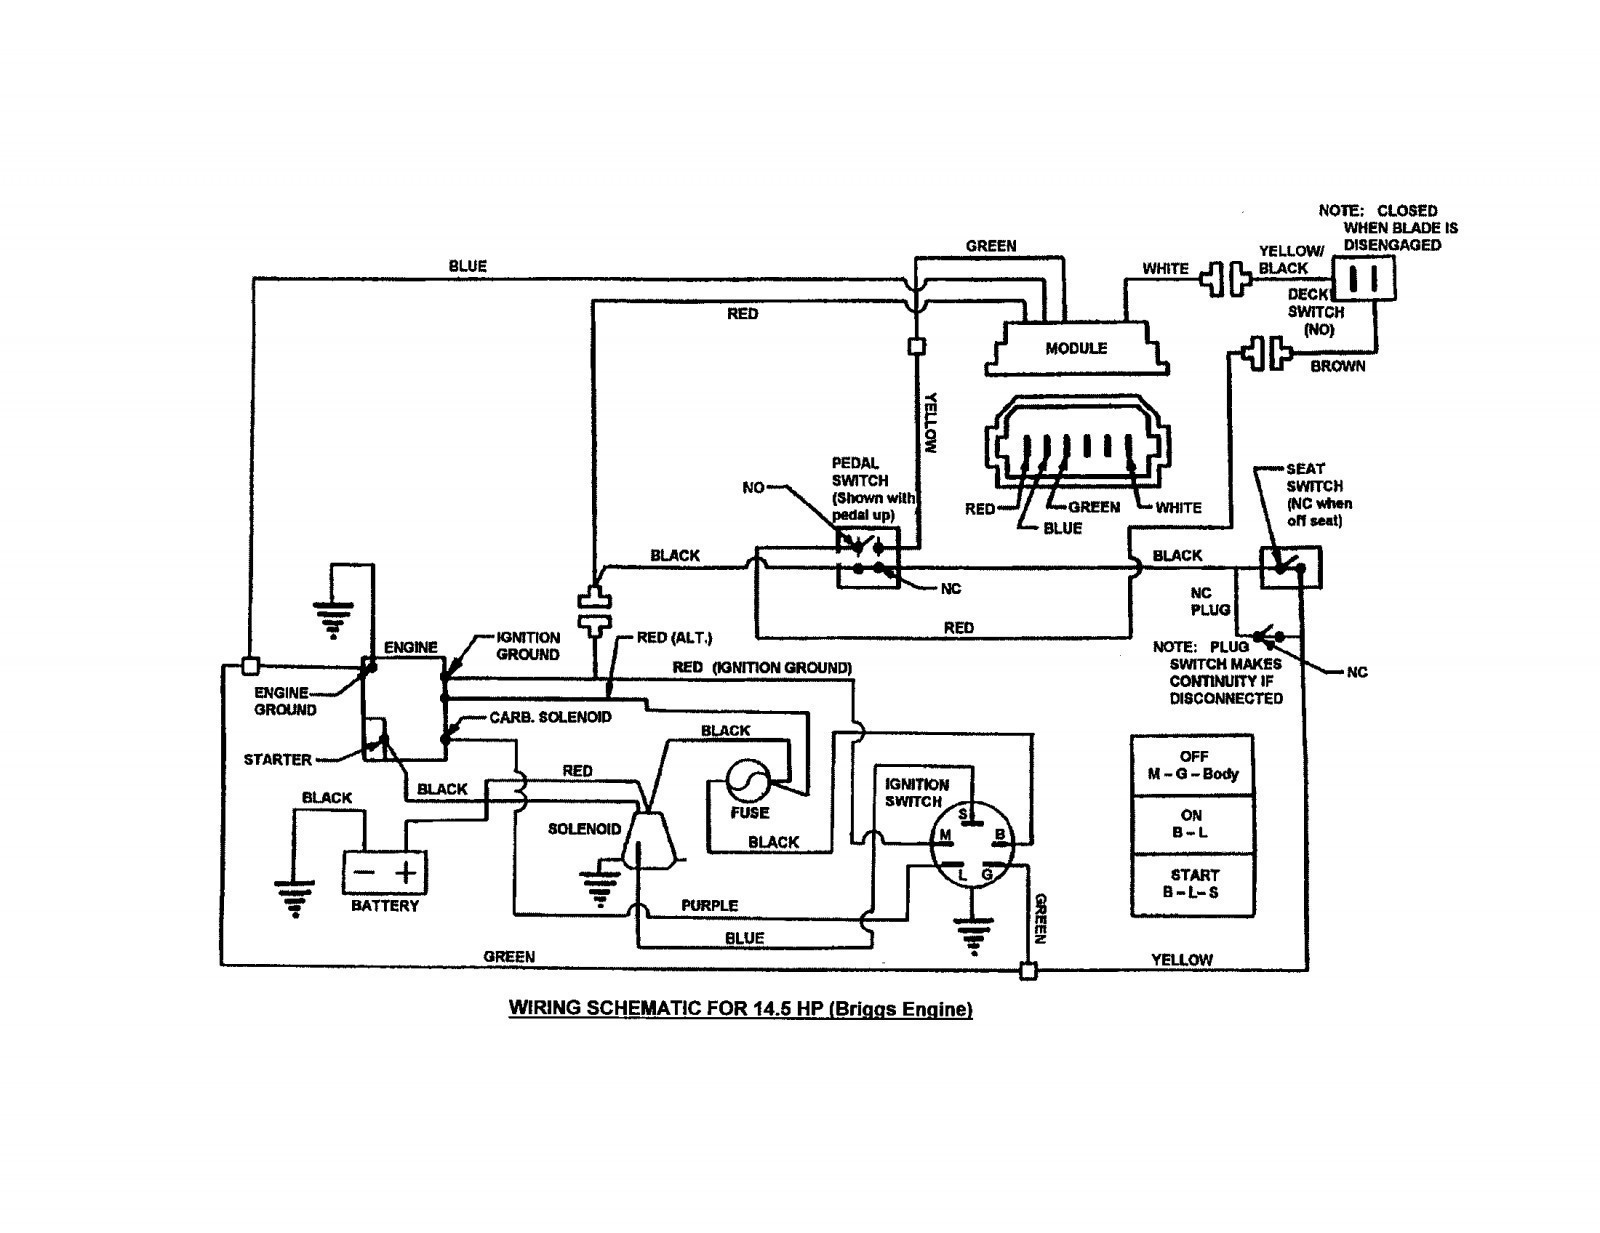 Tecumseh Engines Carburetor Diagram Adjustable For Wiring Free Picture Experts Of Related Post